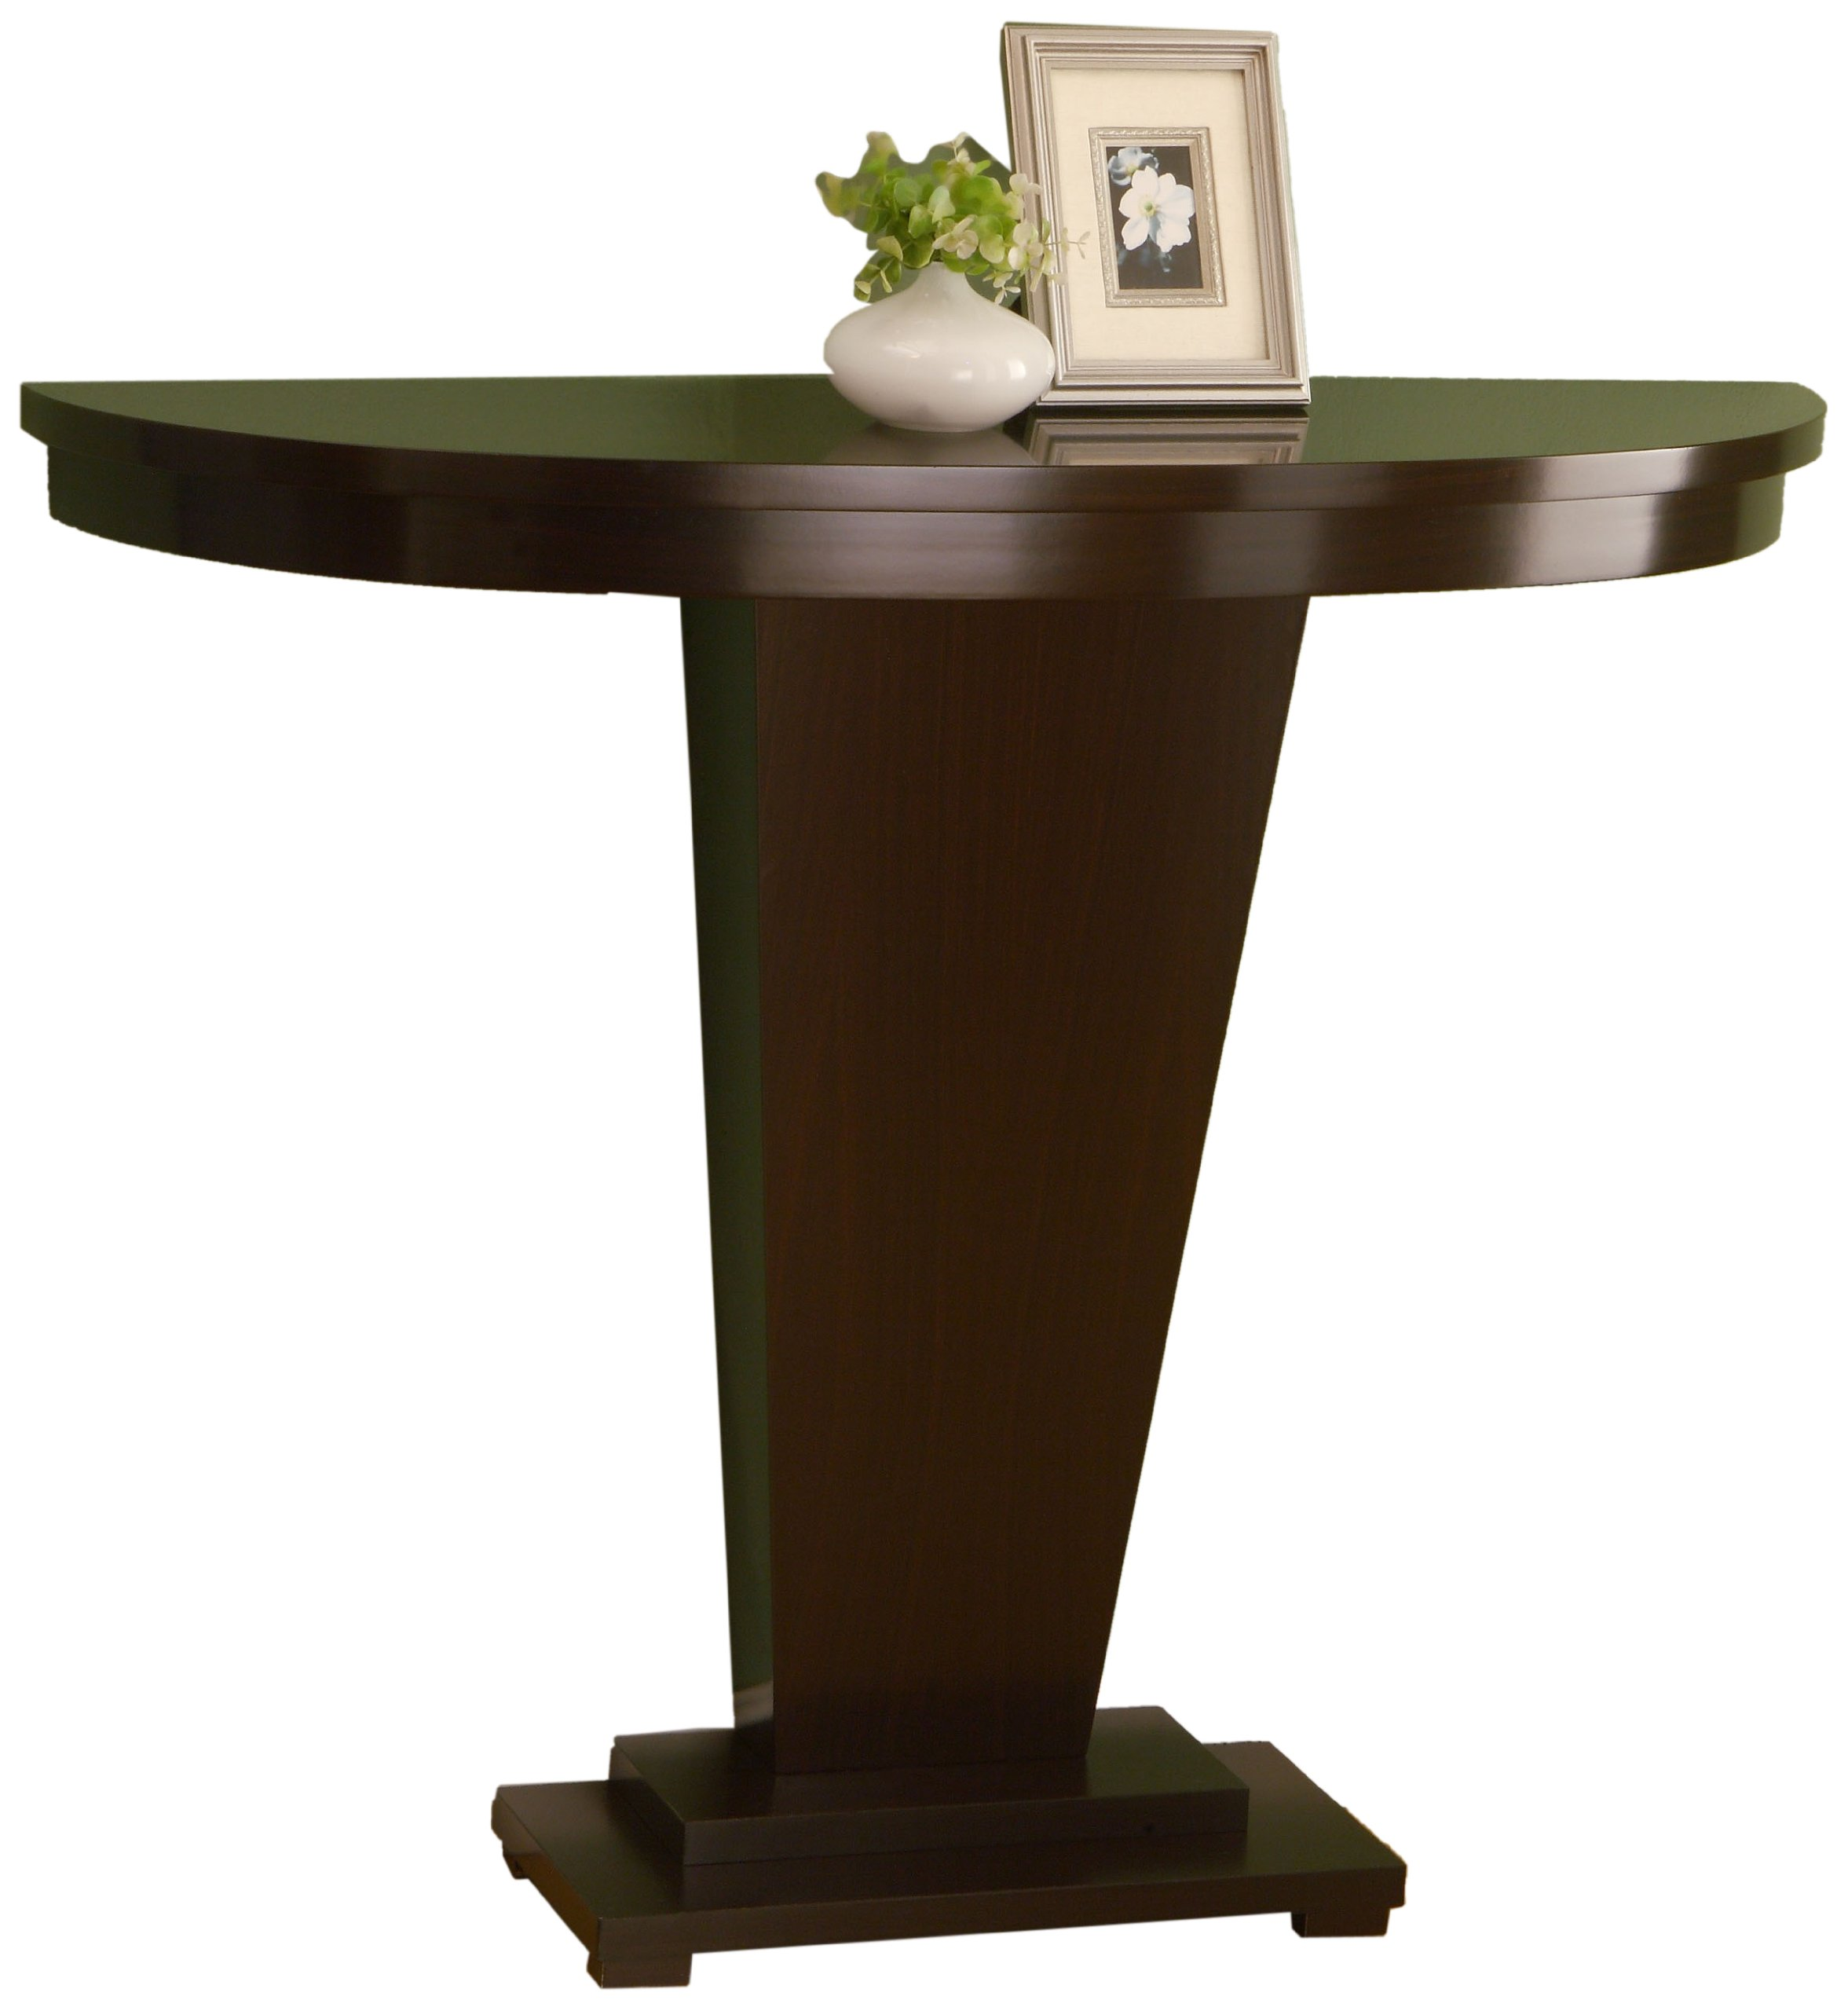 Enitial lab mainstreet console table cappuccino for 12 inch wide sofa table